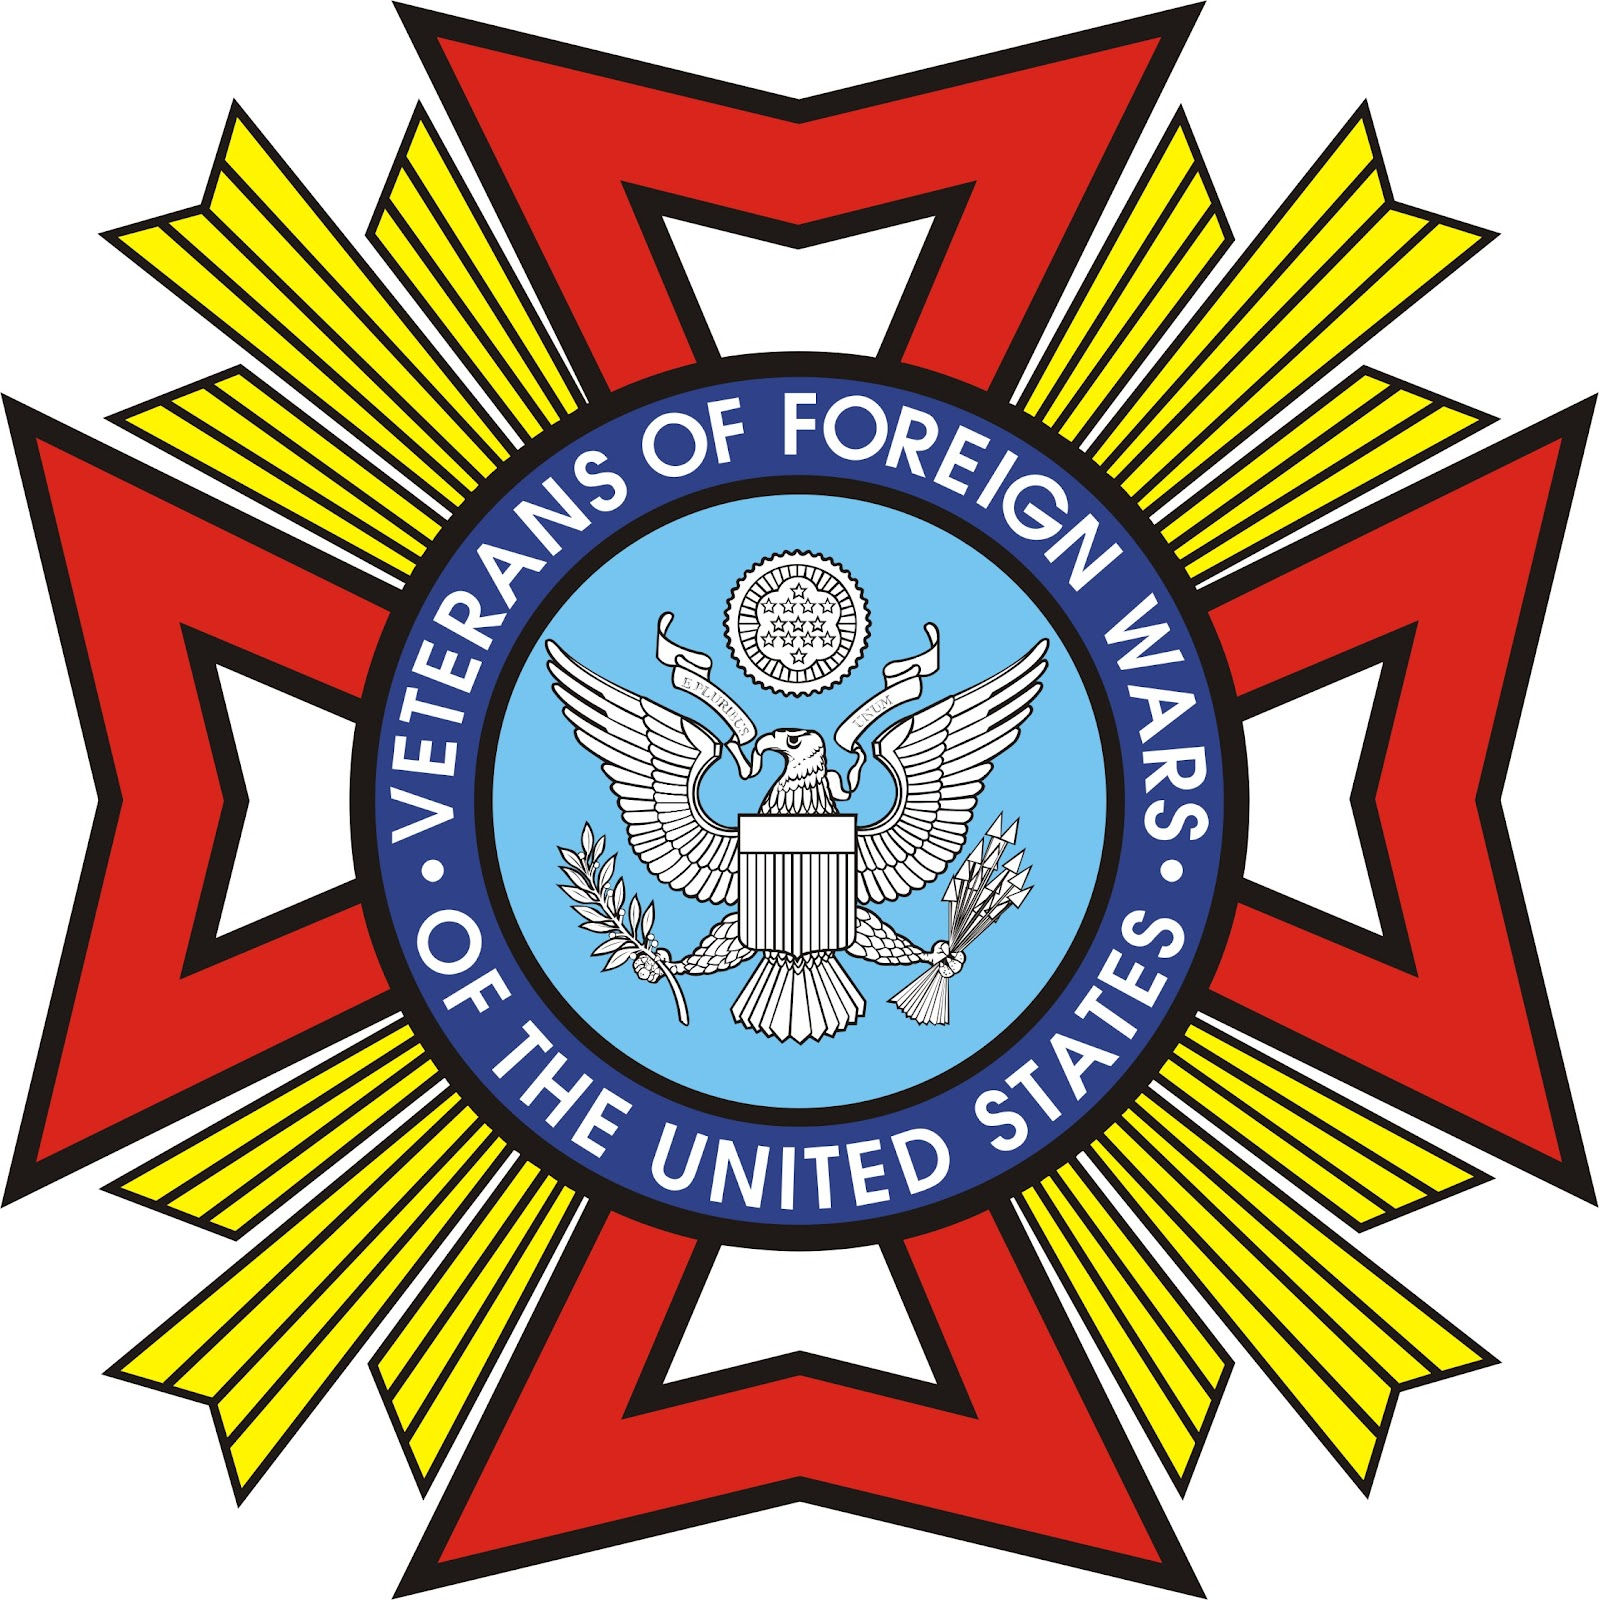 Vfw founding fathers essay